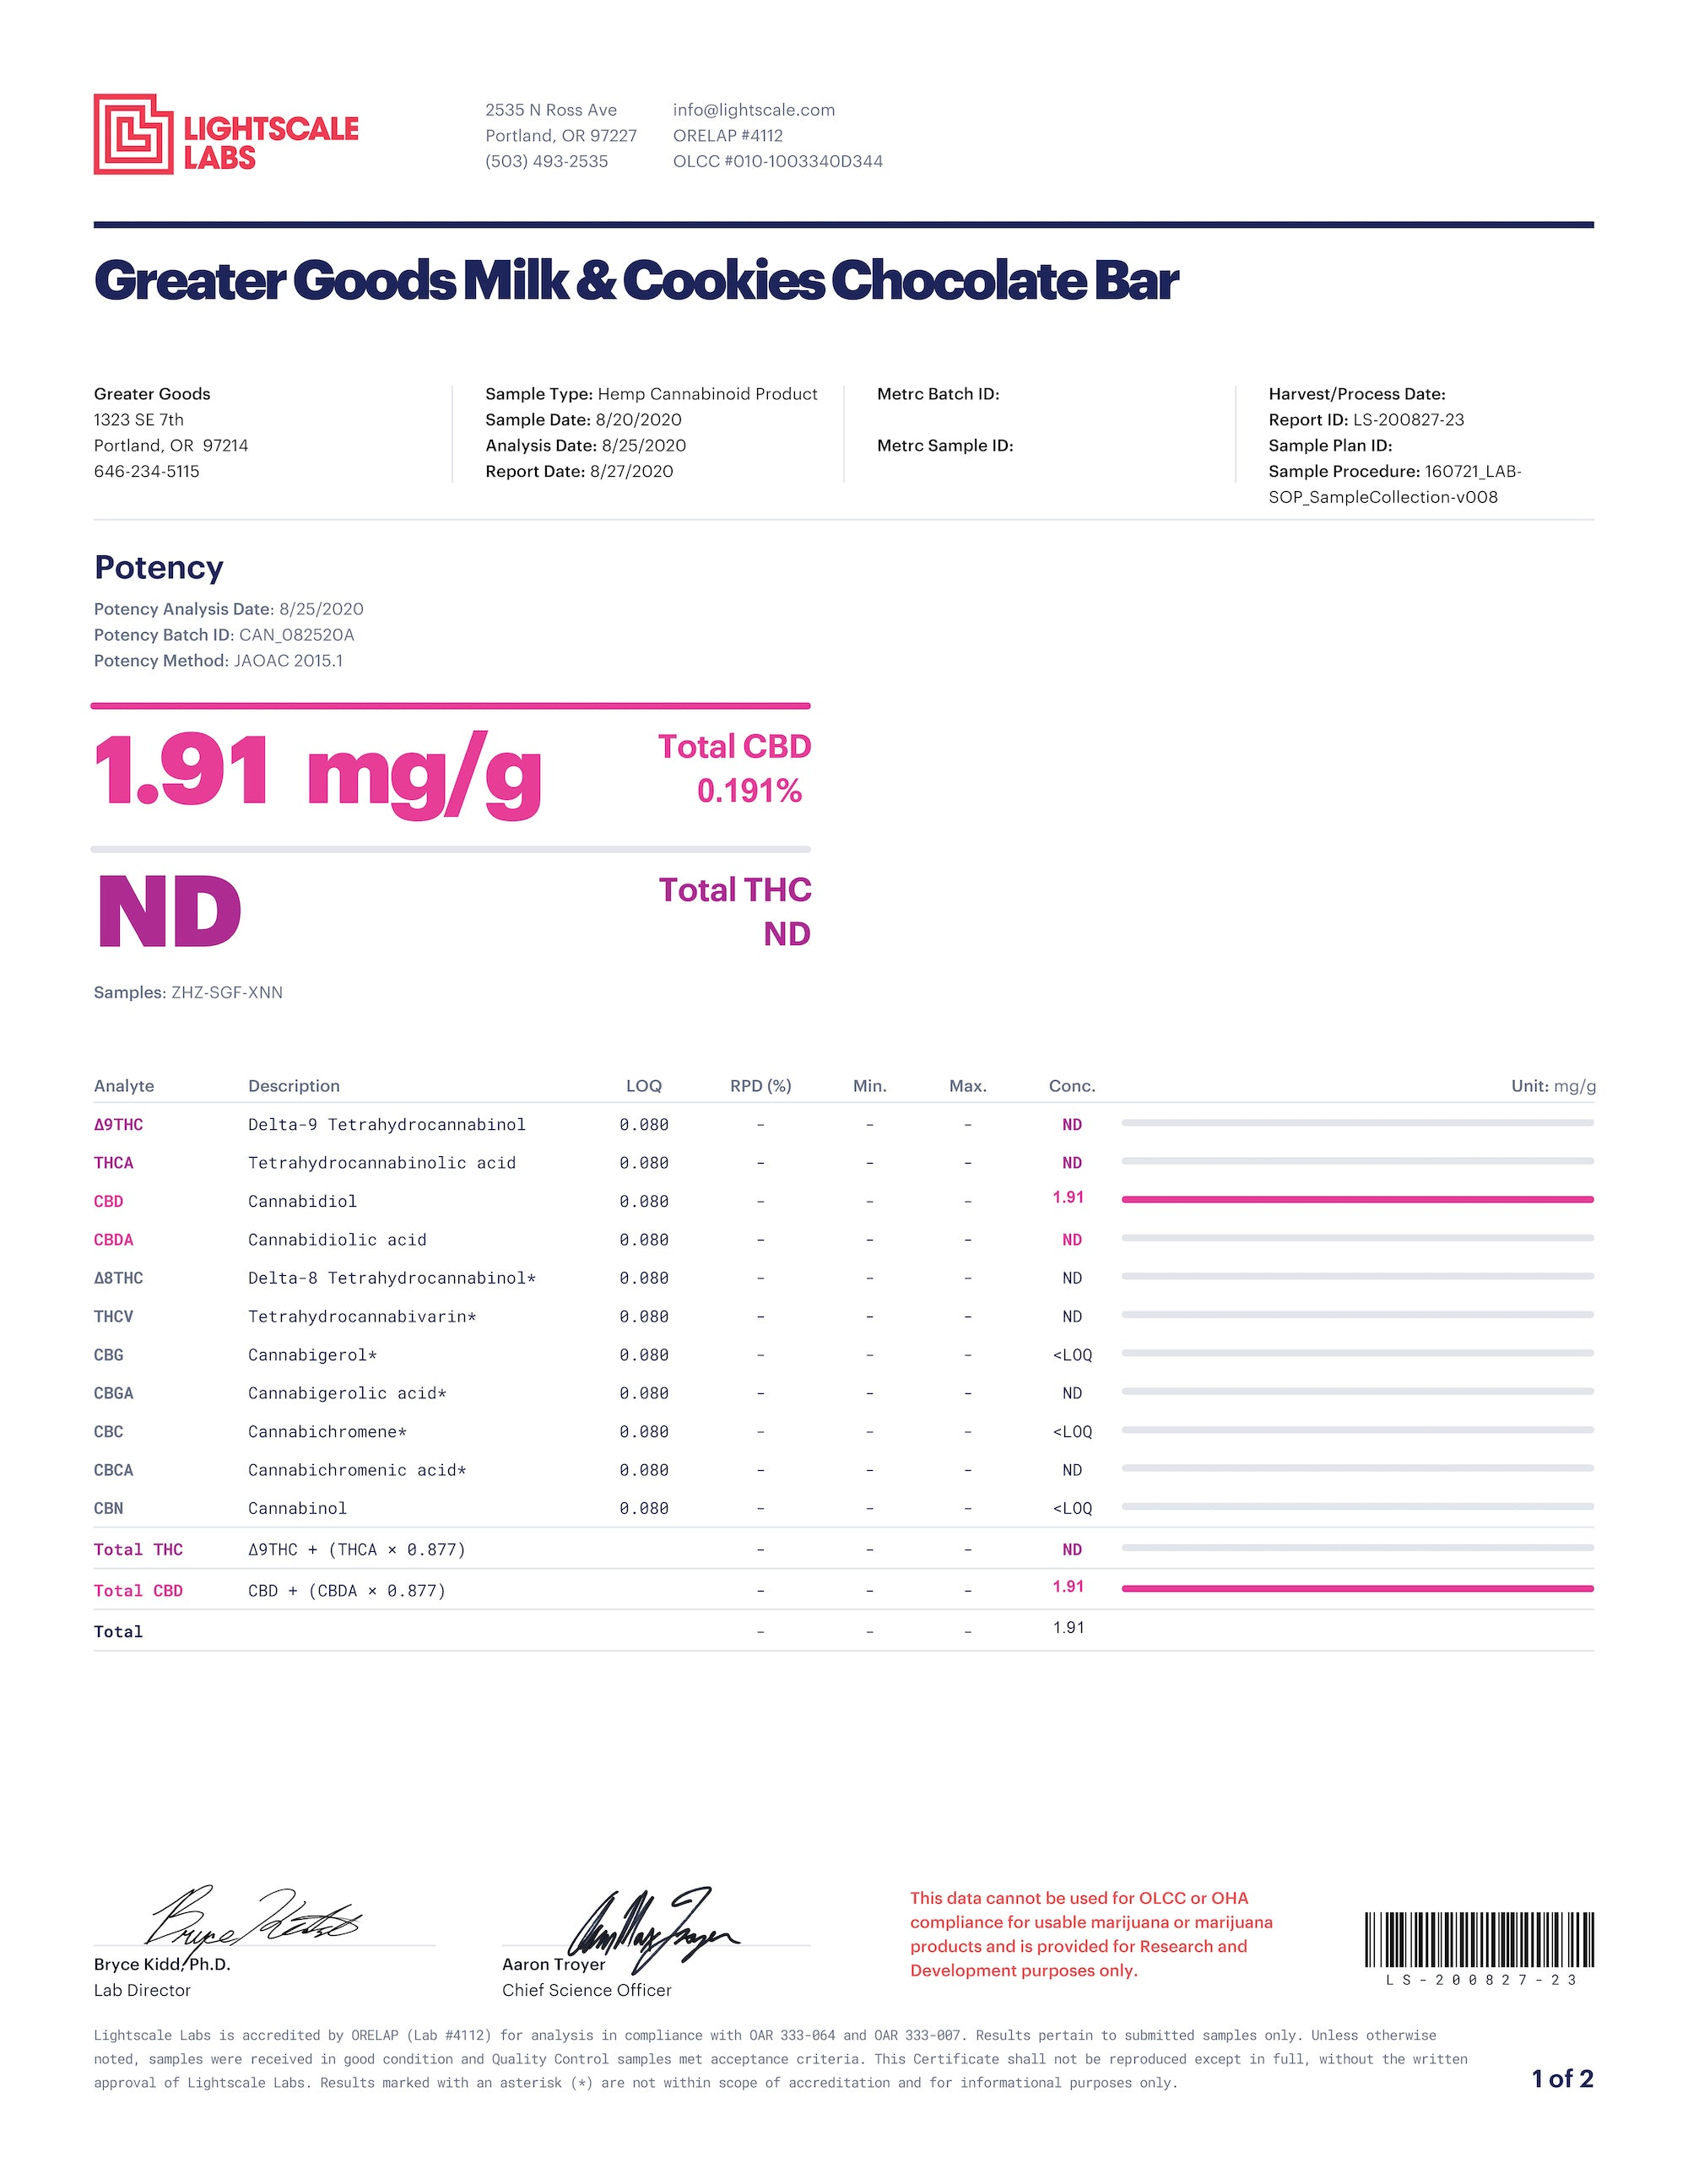 Milk and Cookies Chocolate Bar Certificate of Analysis